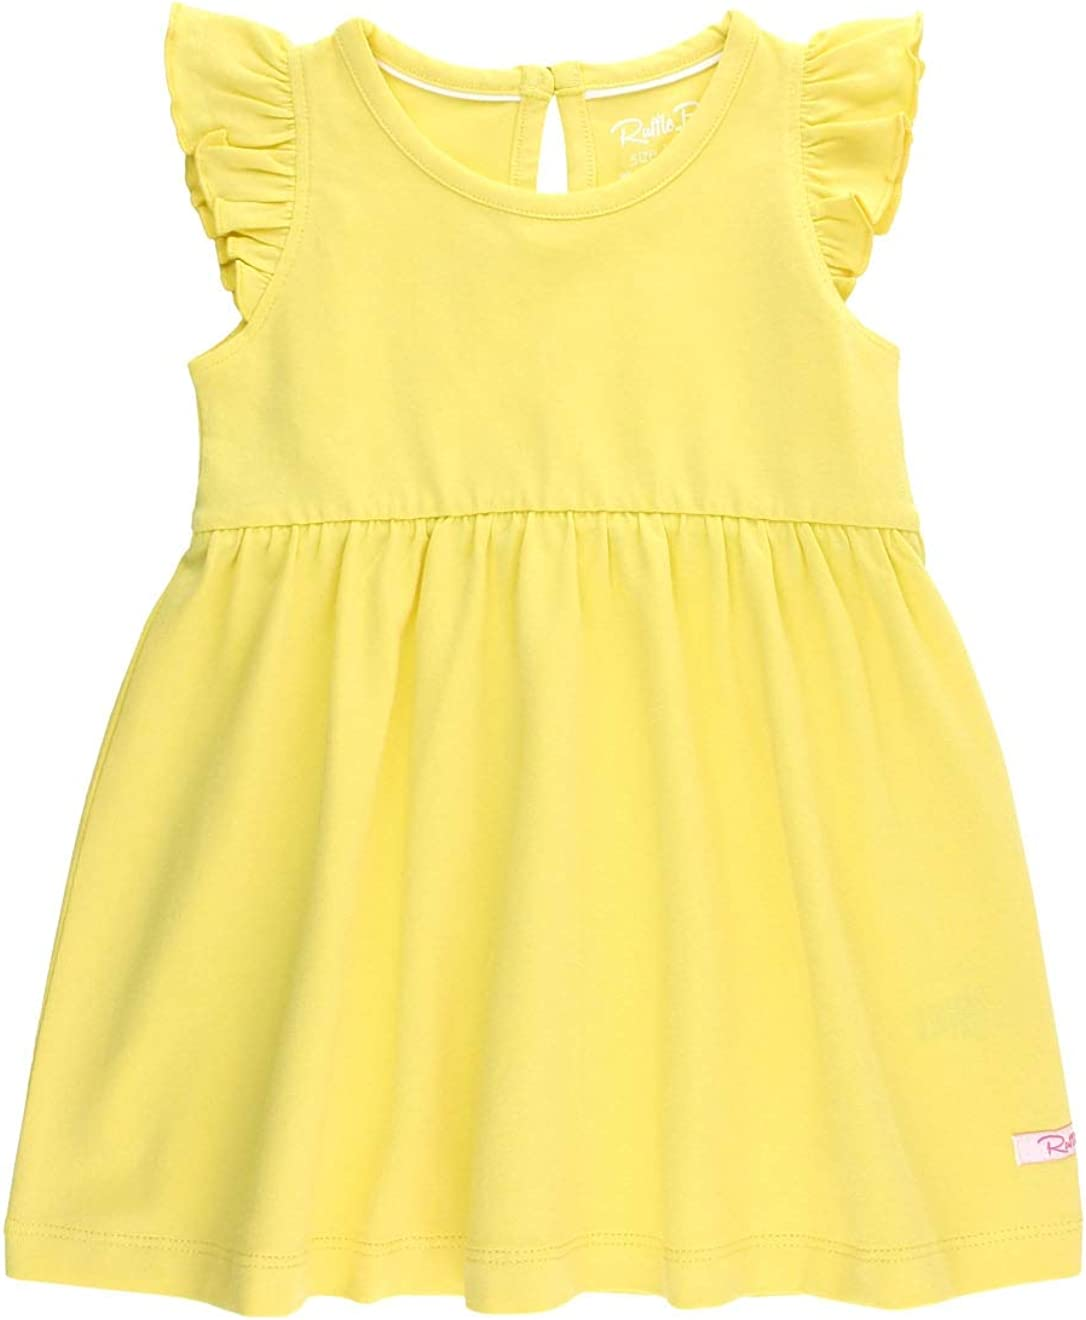 RuffleButts Baby Today's only Toddler Girls Sleeveless Knit with Branded goods Dress Ruffle